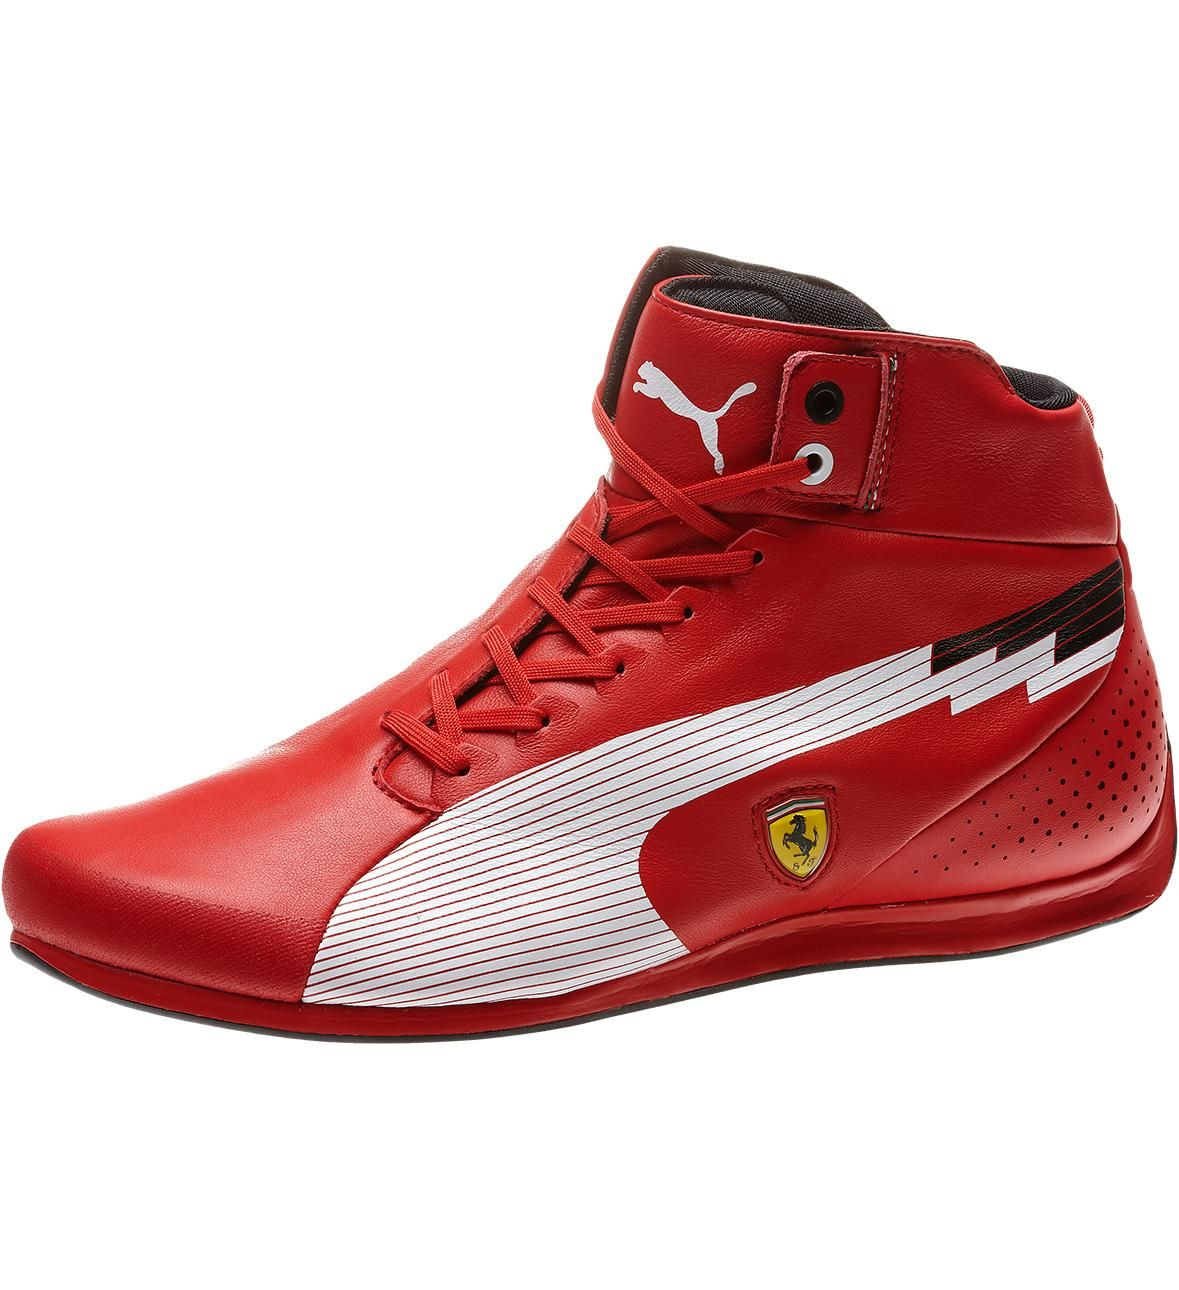 puma ferrari evospeed mid shoes puma shoes. Black Bedroom Furniture Sets. Home Design Ideas